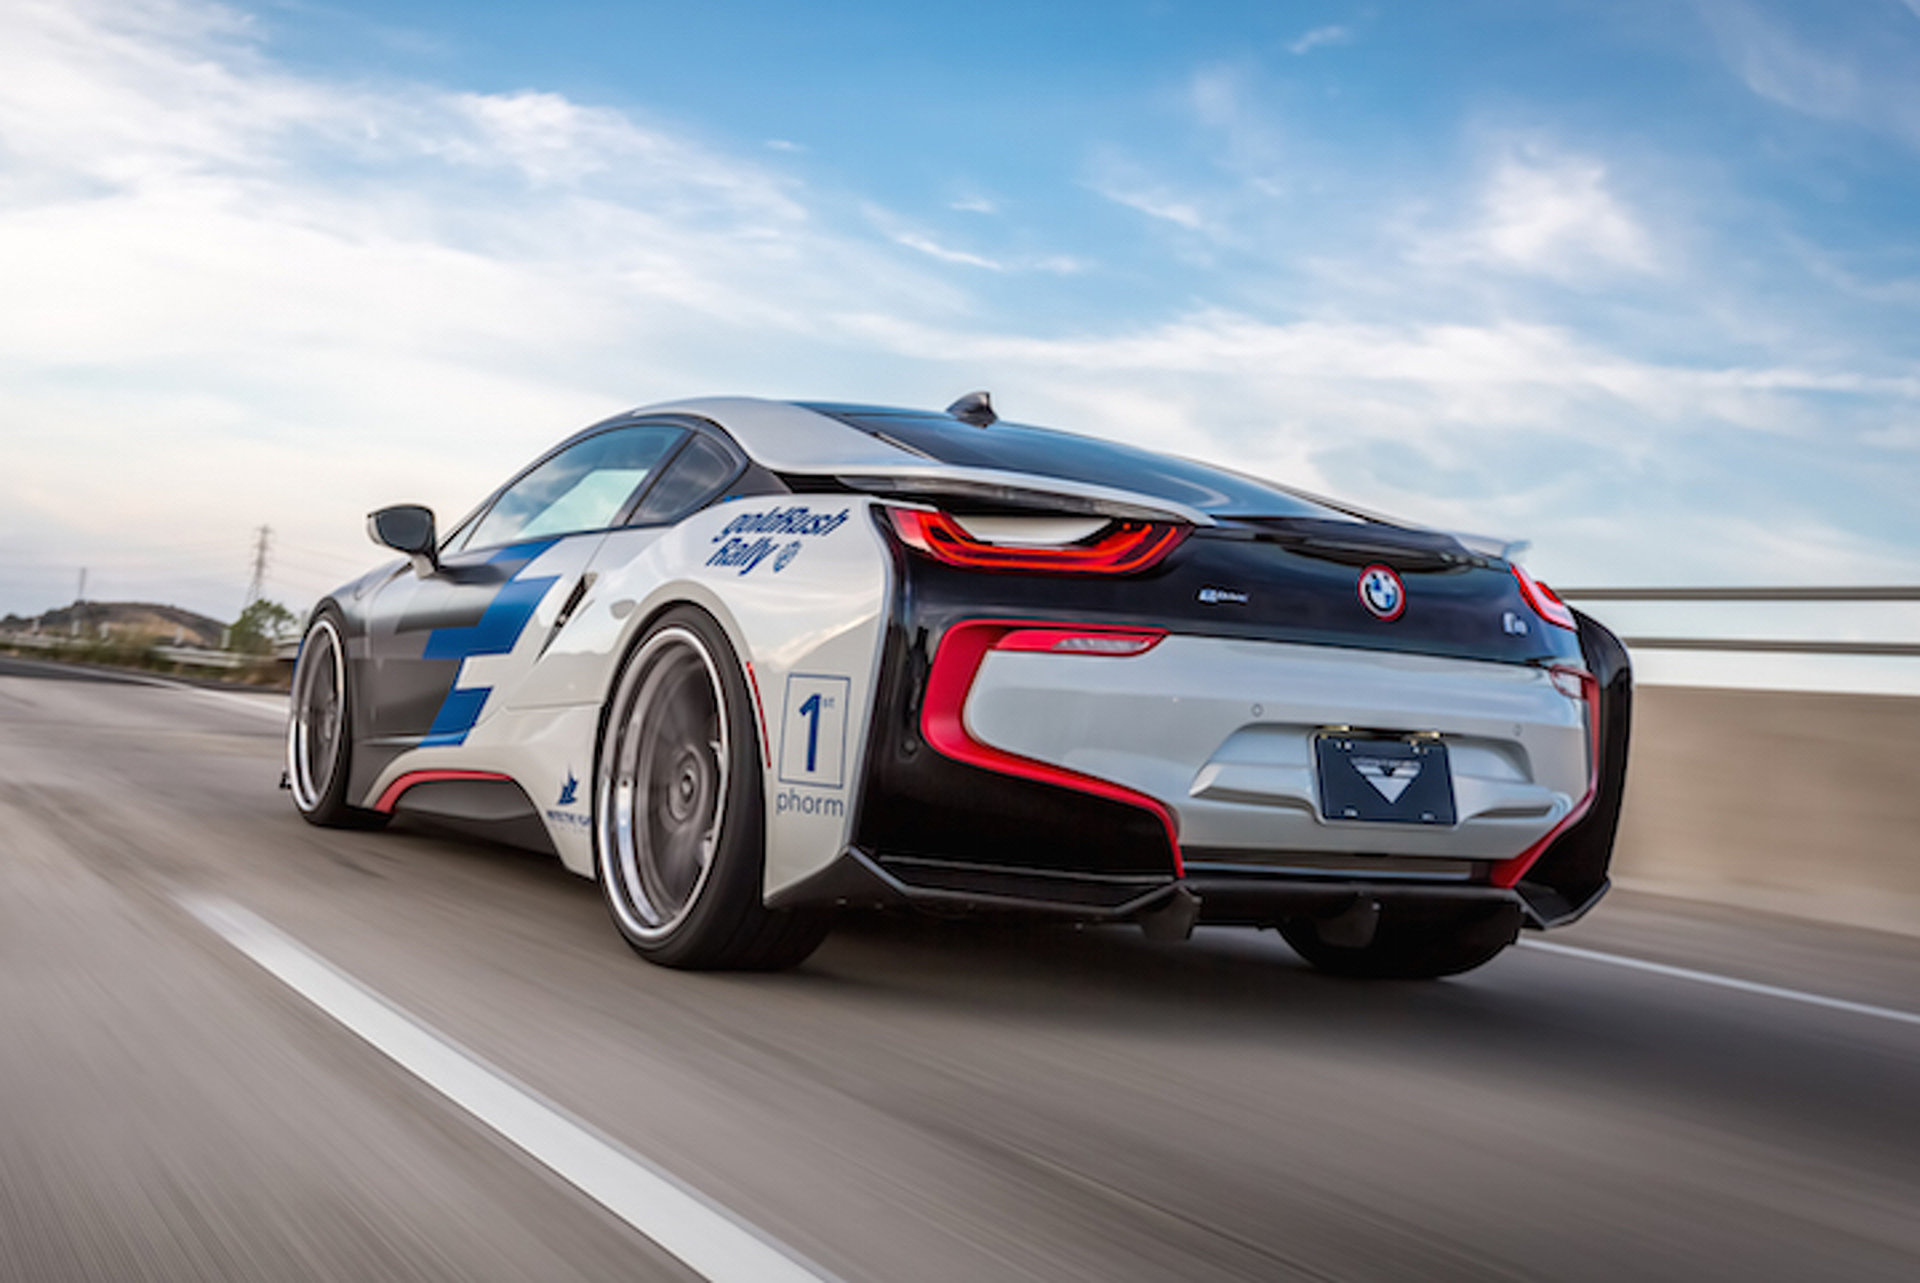 Vorsteiner BMW i8 Dolled Up in New Shoes, Subtle Aerodynamics